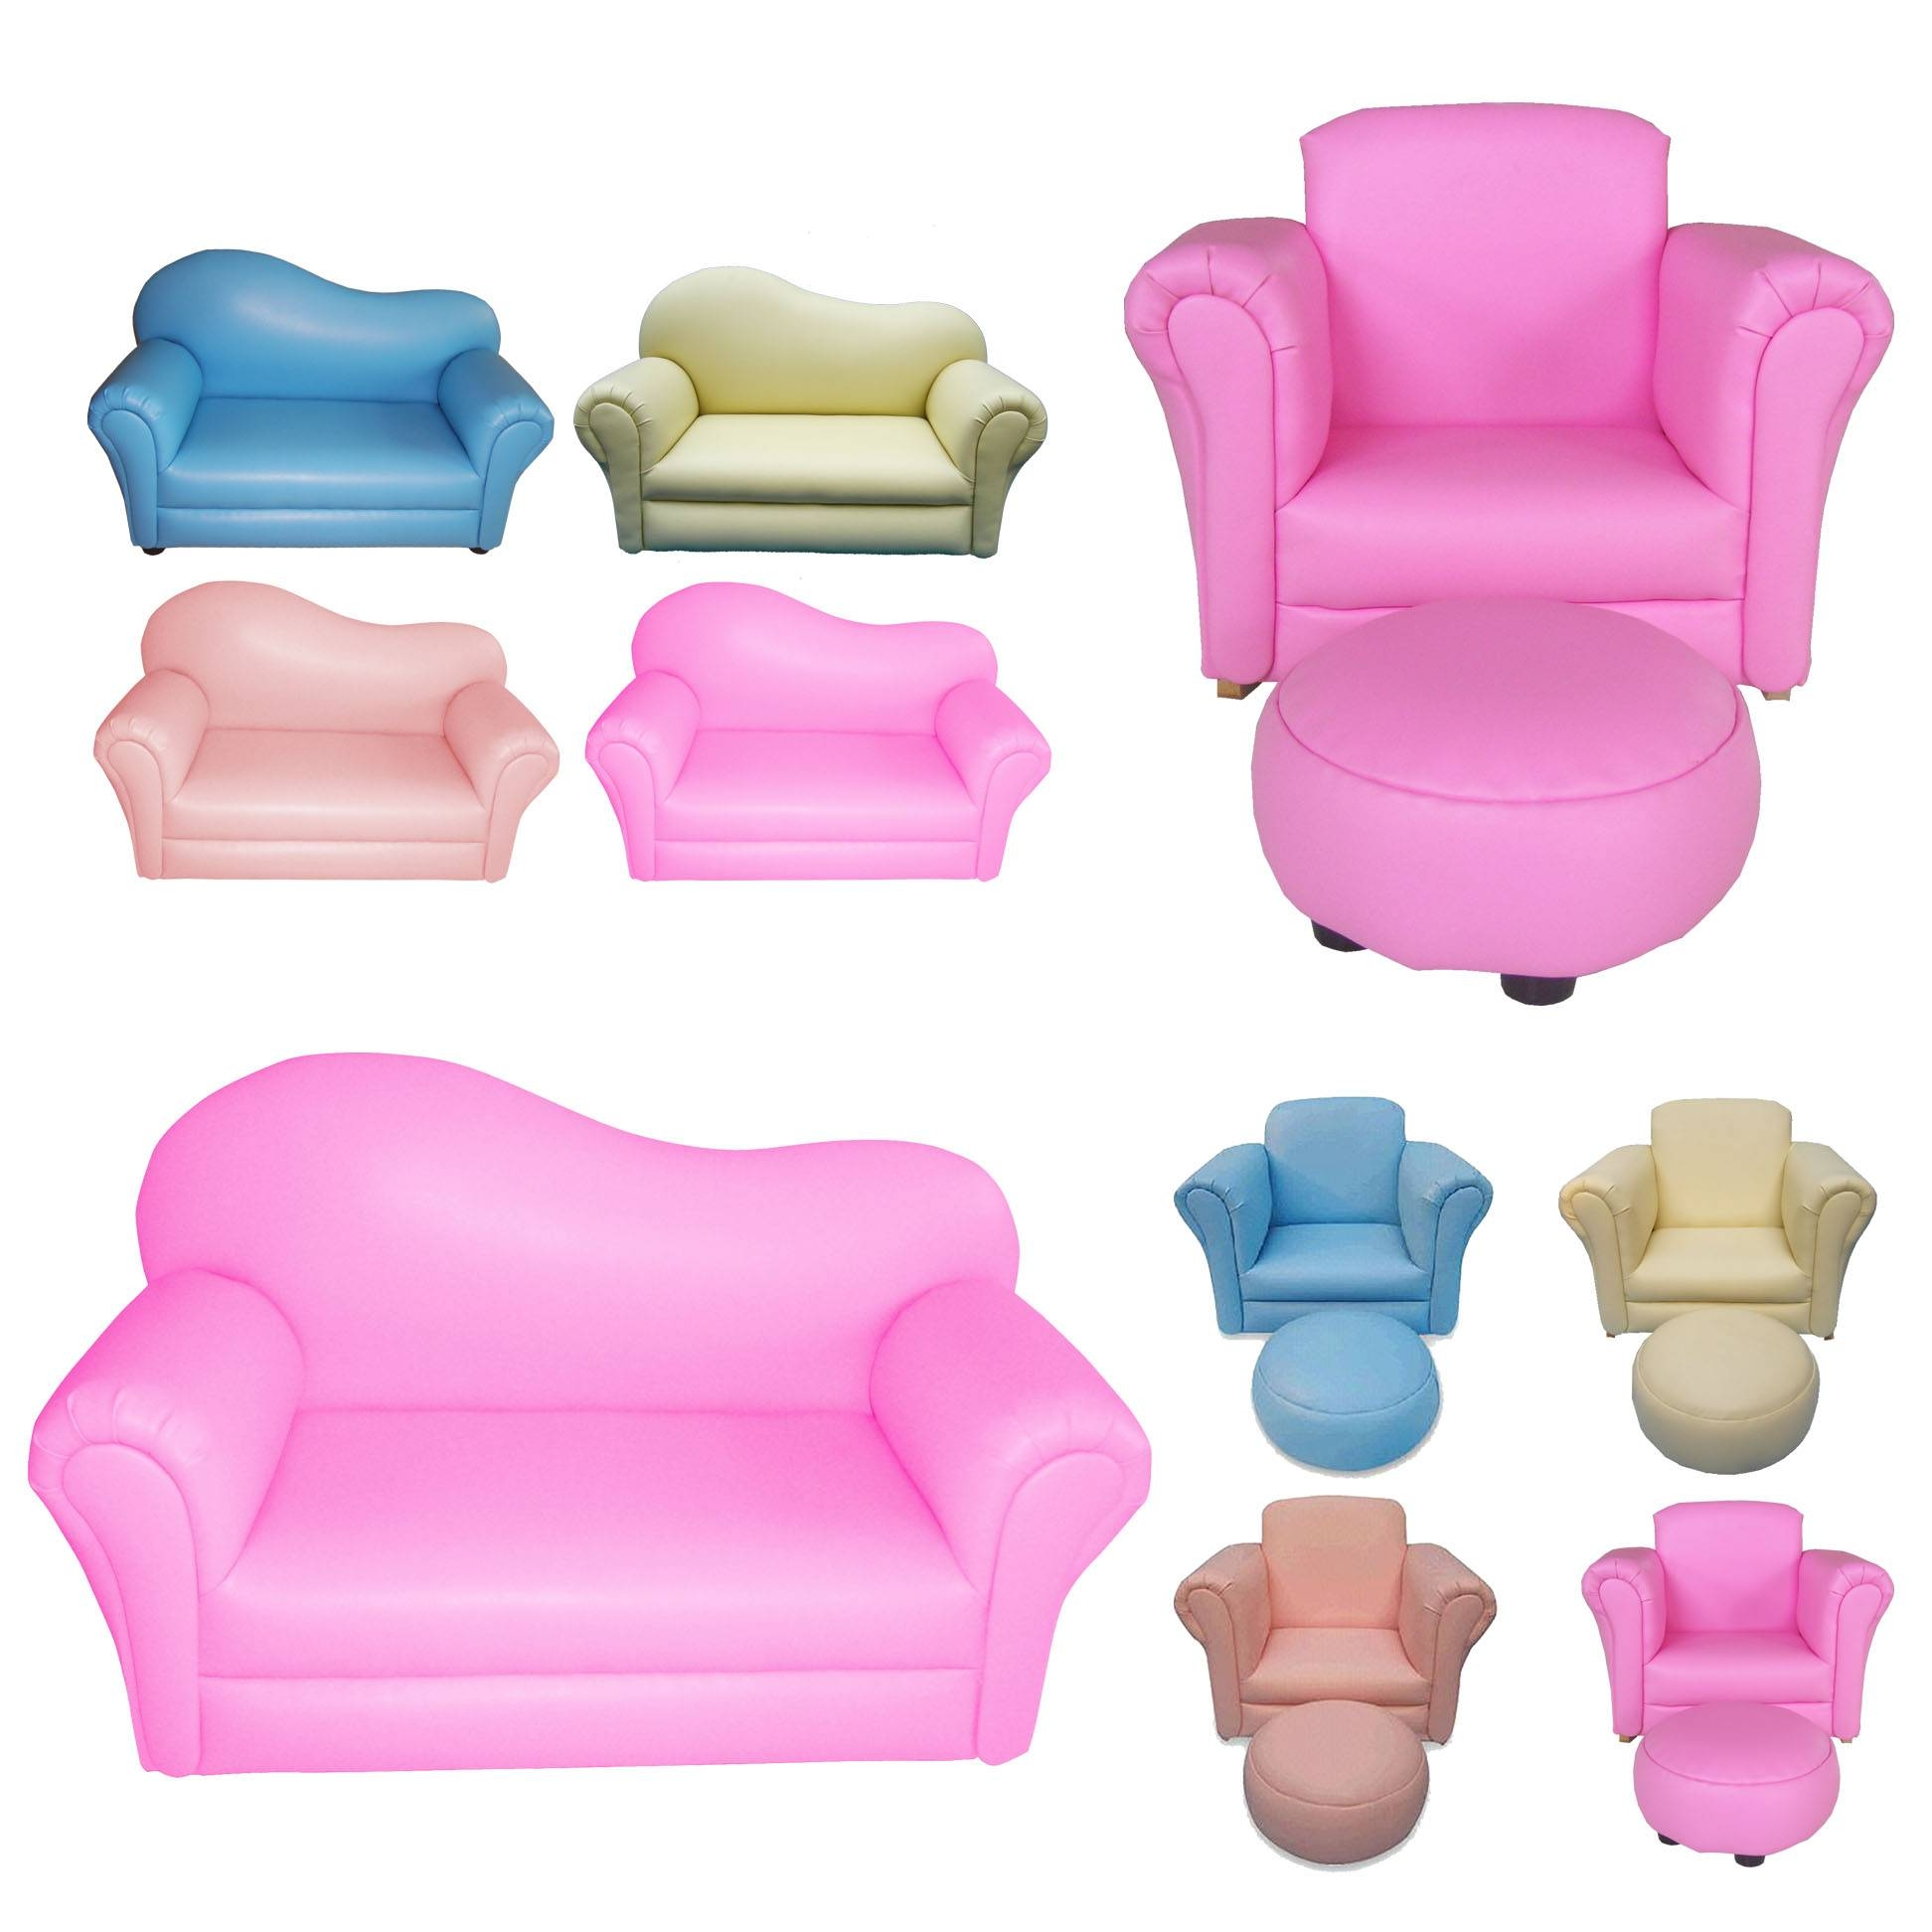 Sofas Center : Kids Sofa Chair Withman Target Chairs Clearance pertaining to Personalized Kids Chairs and Sofas (Image 14 of 15)